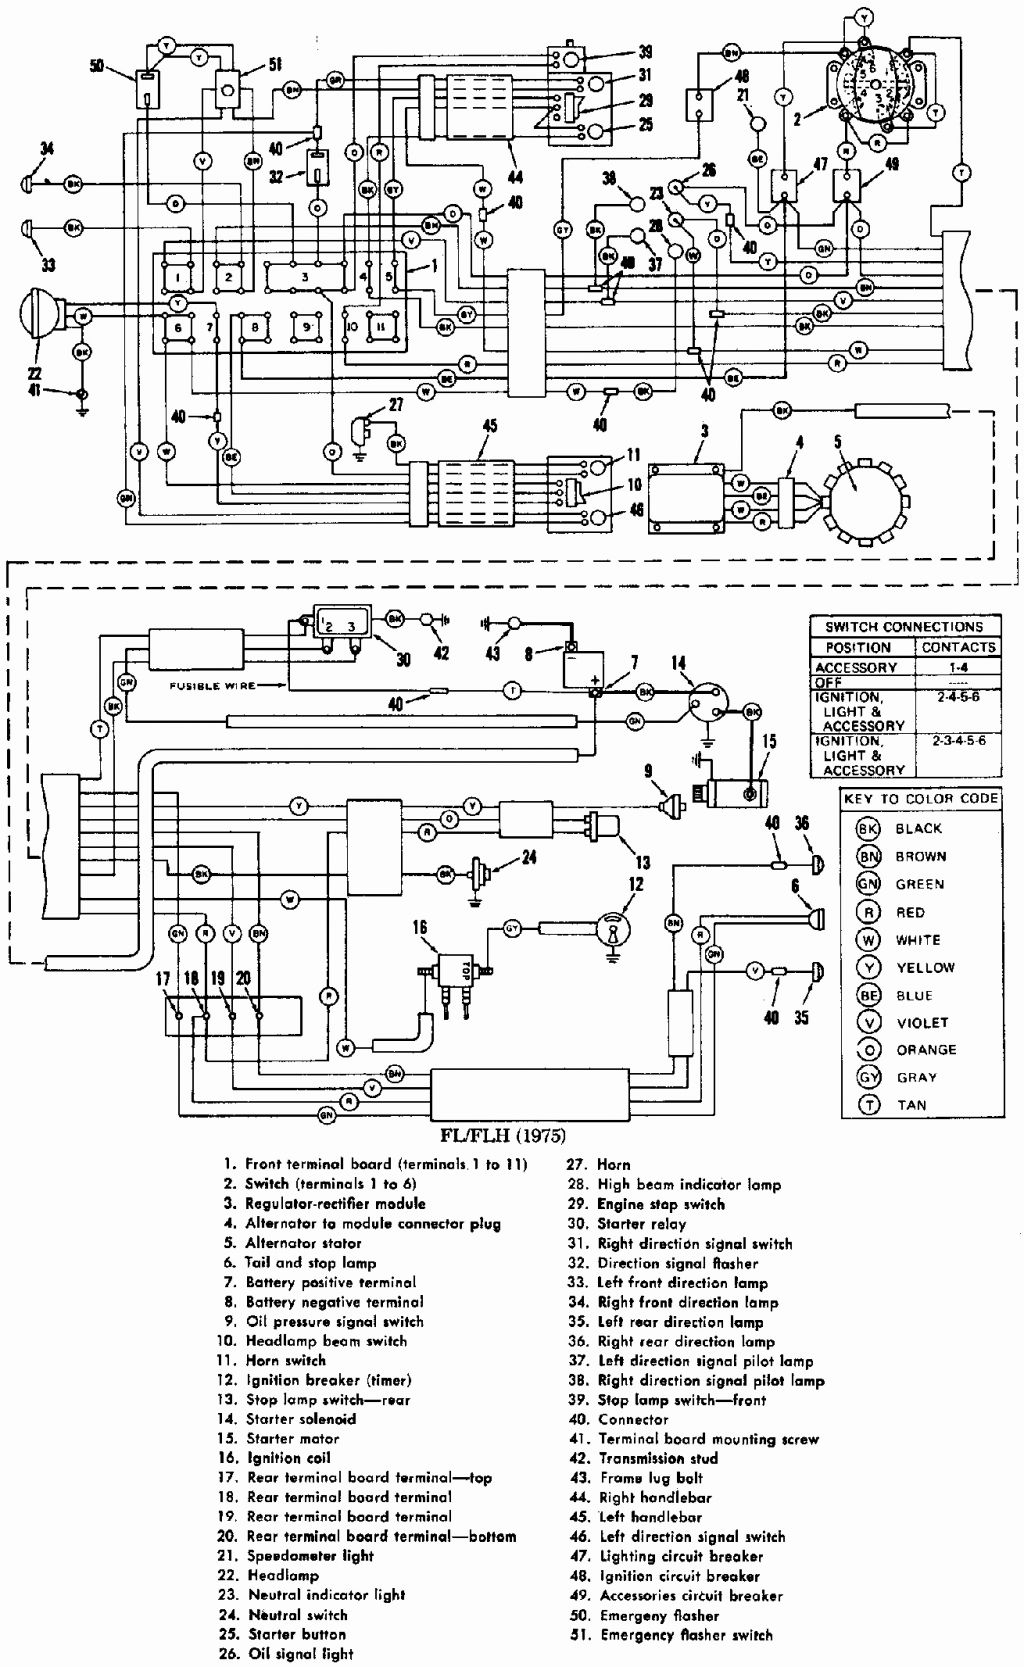 Harley Touring Wiring Diagram | Repair Manual on